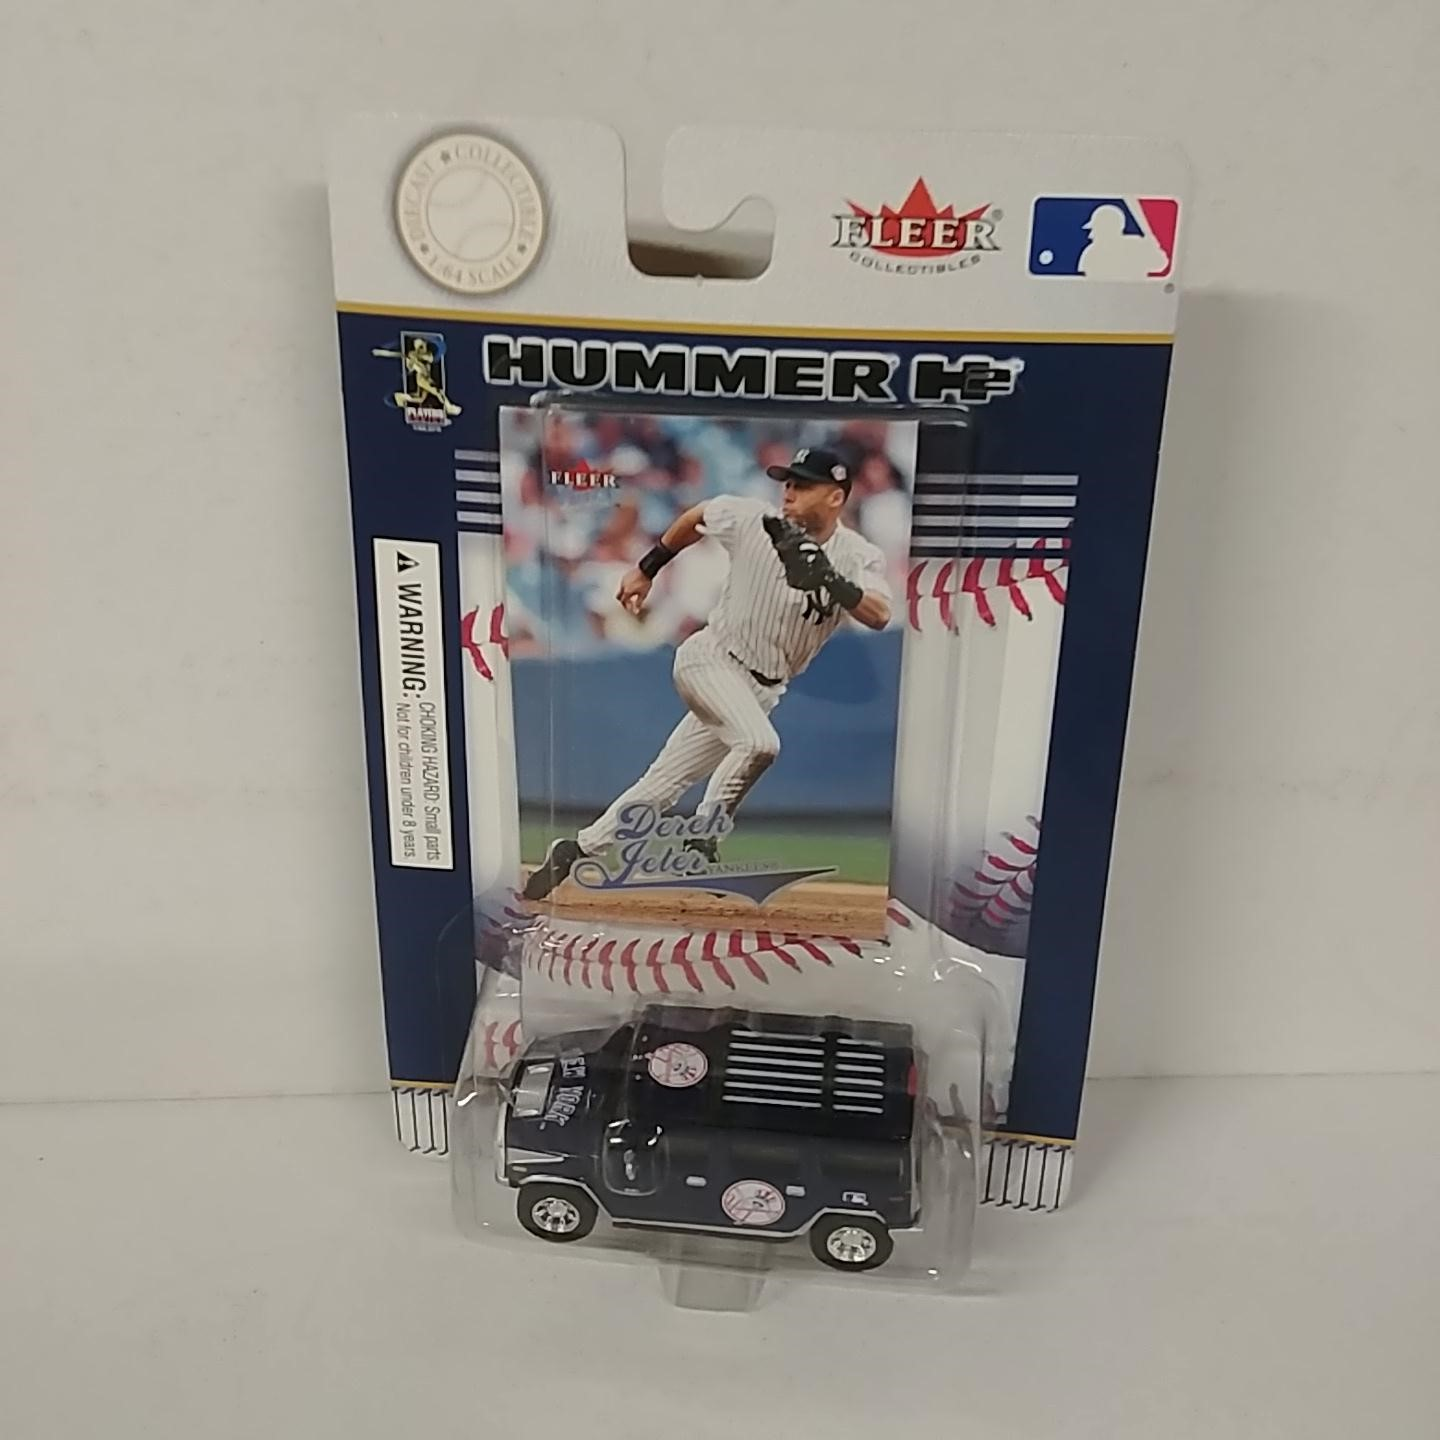 2004 New York Yankees 1/64th Hummer with Derek Jeter trading card